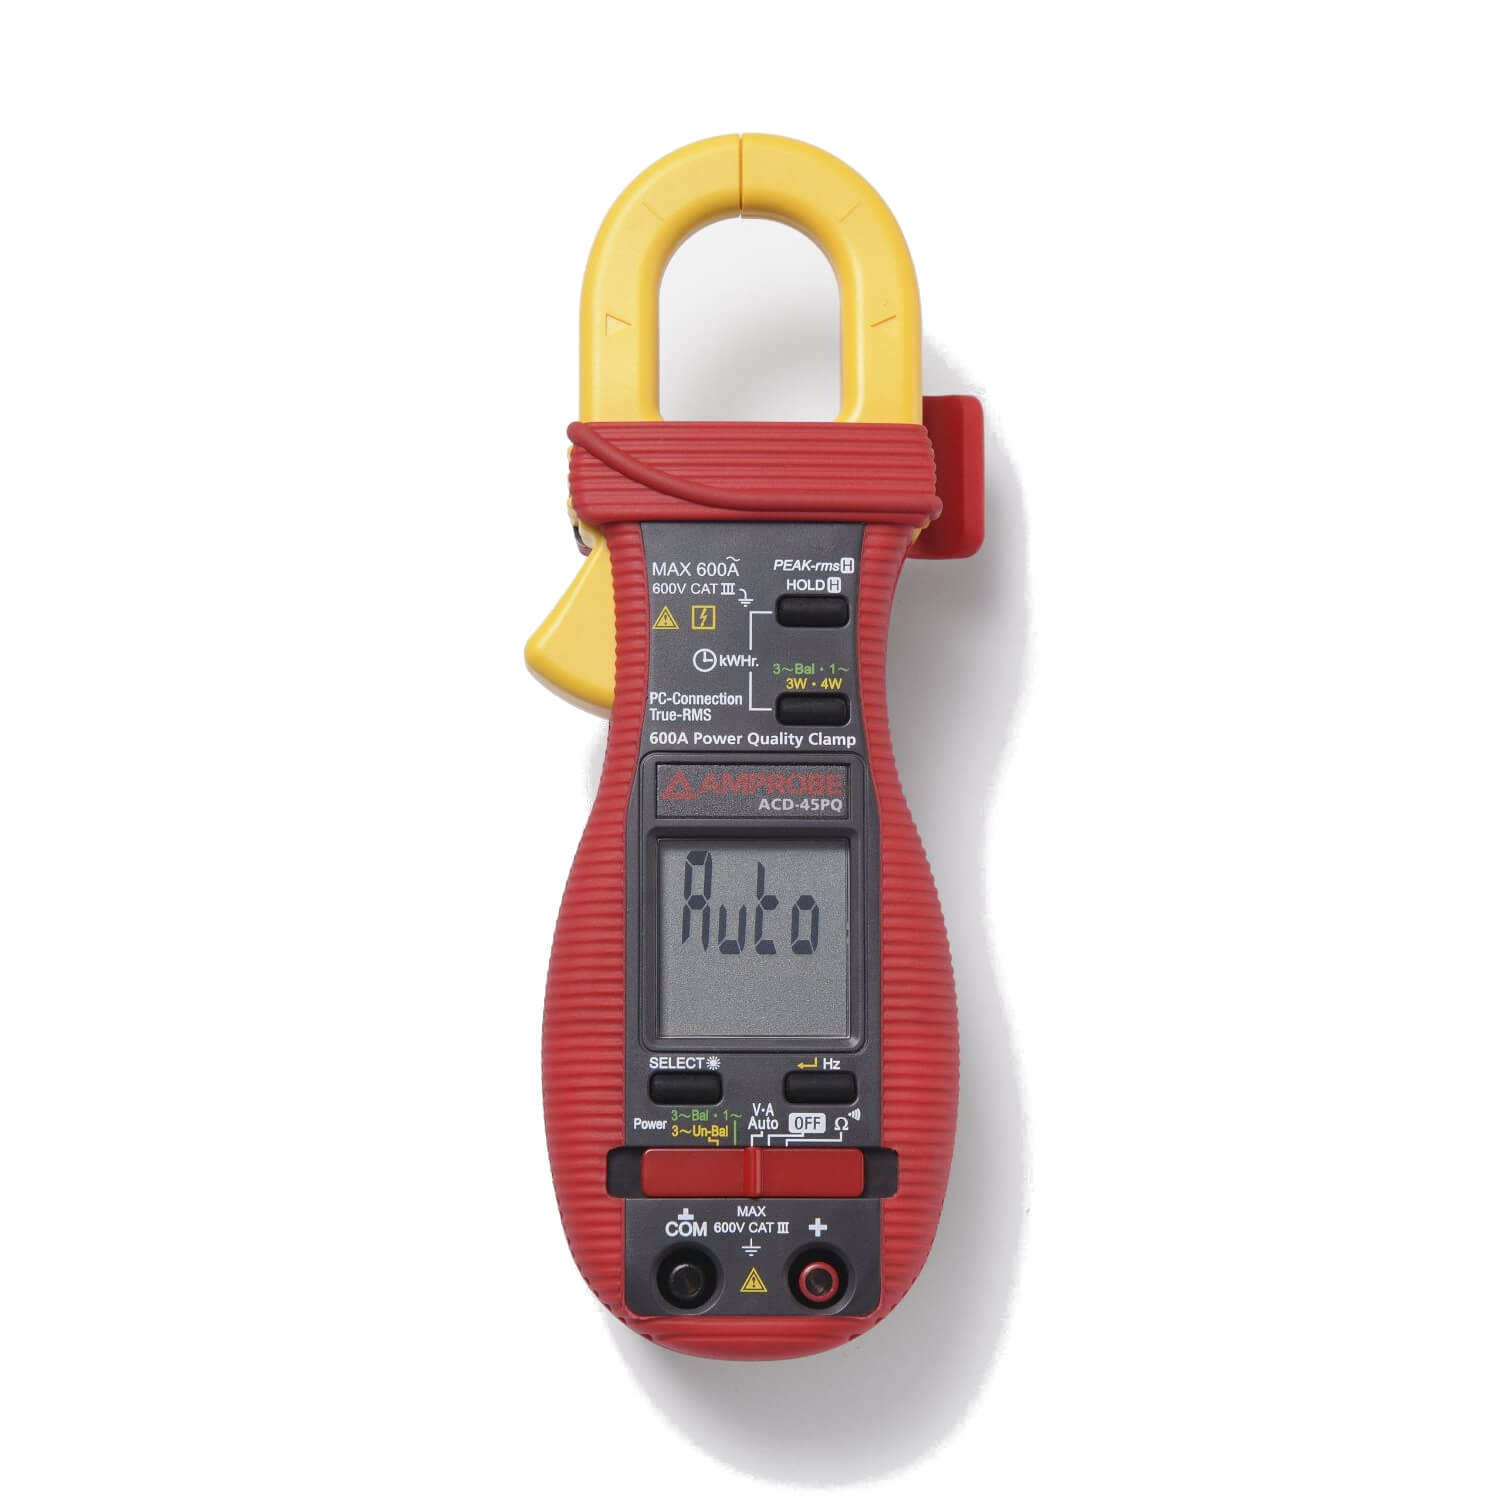 Amprobe ACD-45PQ Clamp-on Power Quality Meter 600A